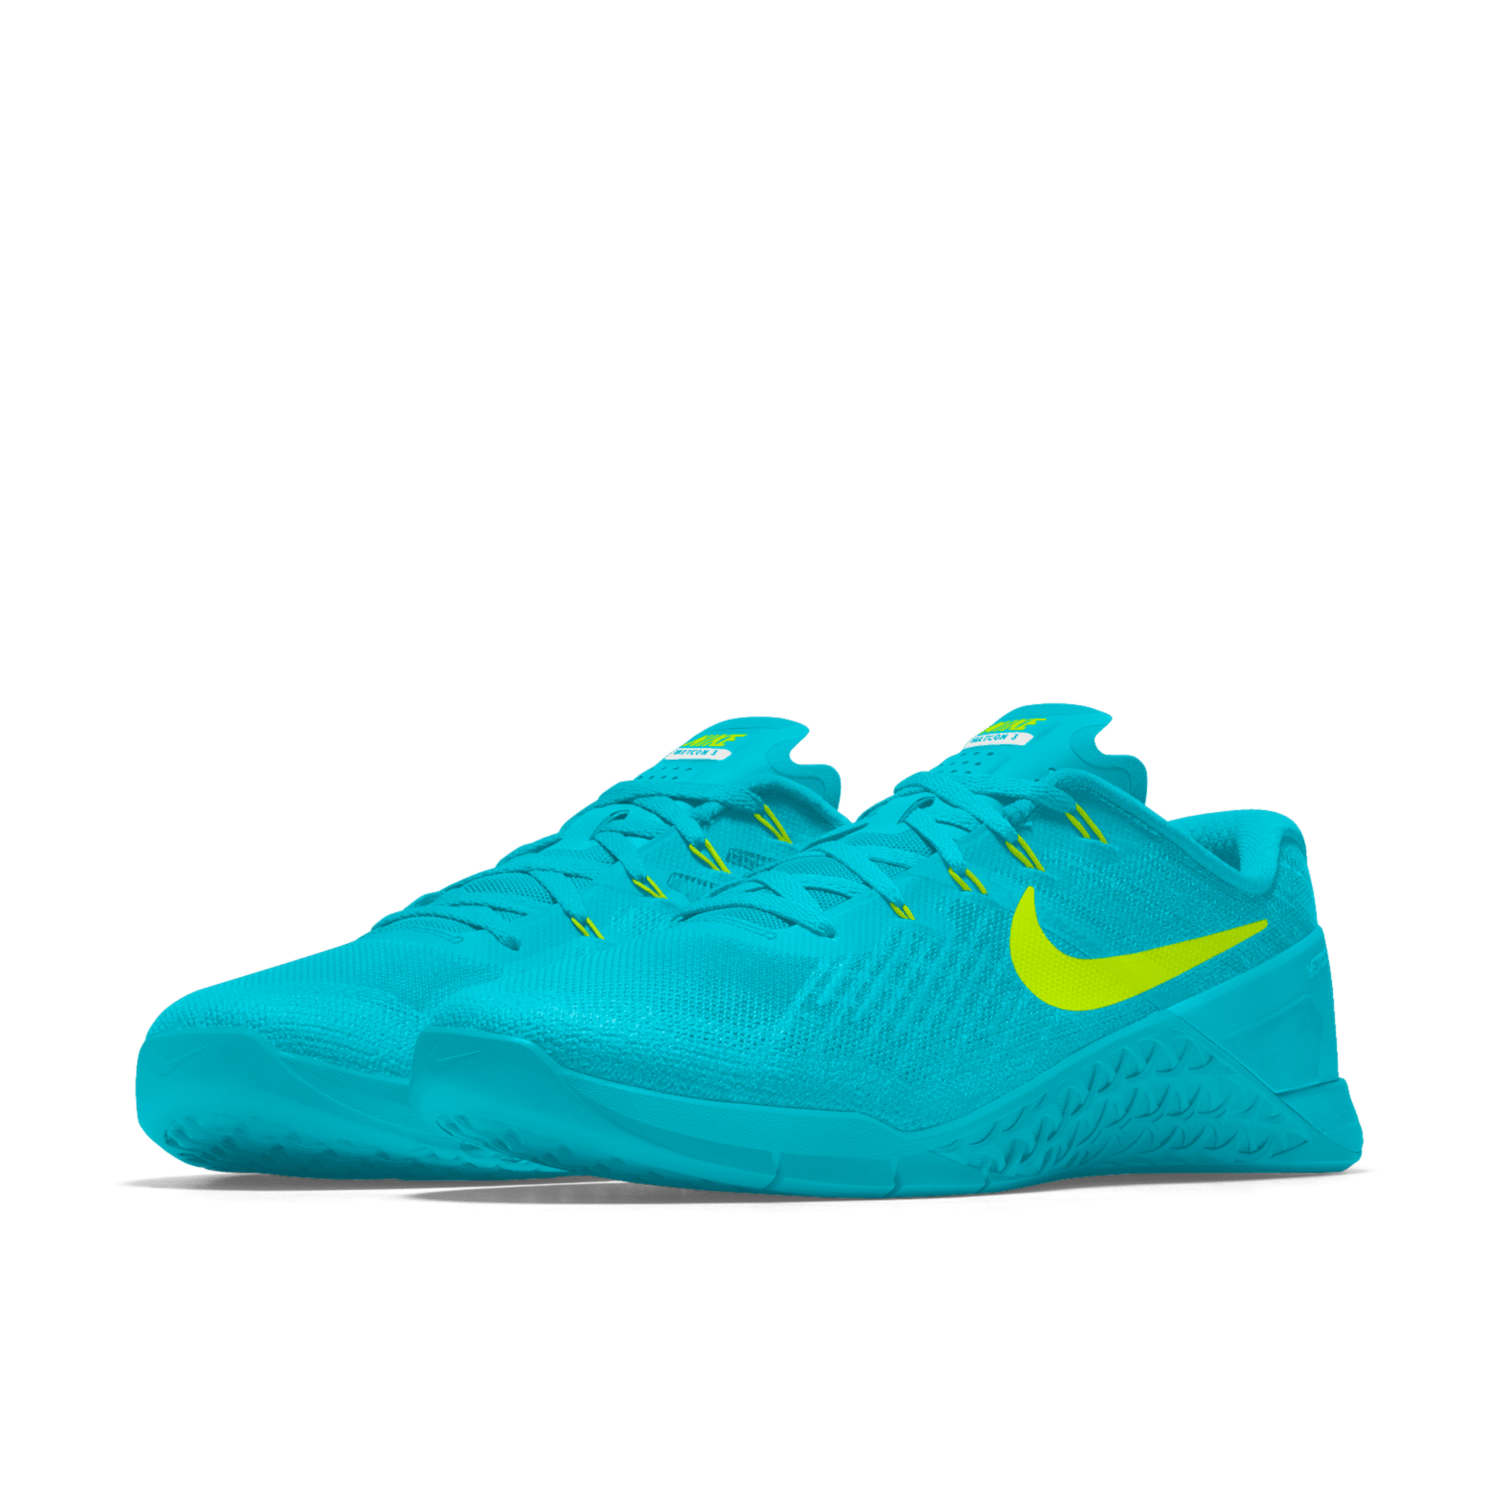 Íntimo Gemidos personal  Hit The Gym in Style With These Flashy Nike Shoes!